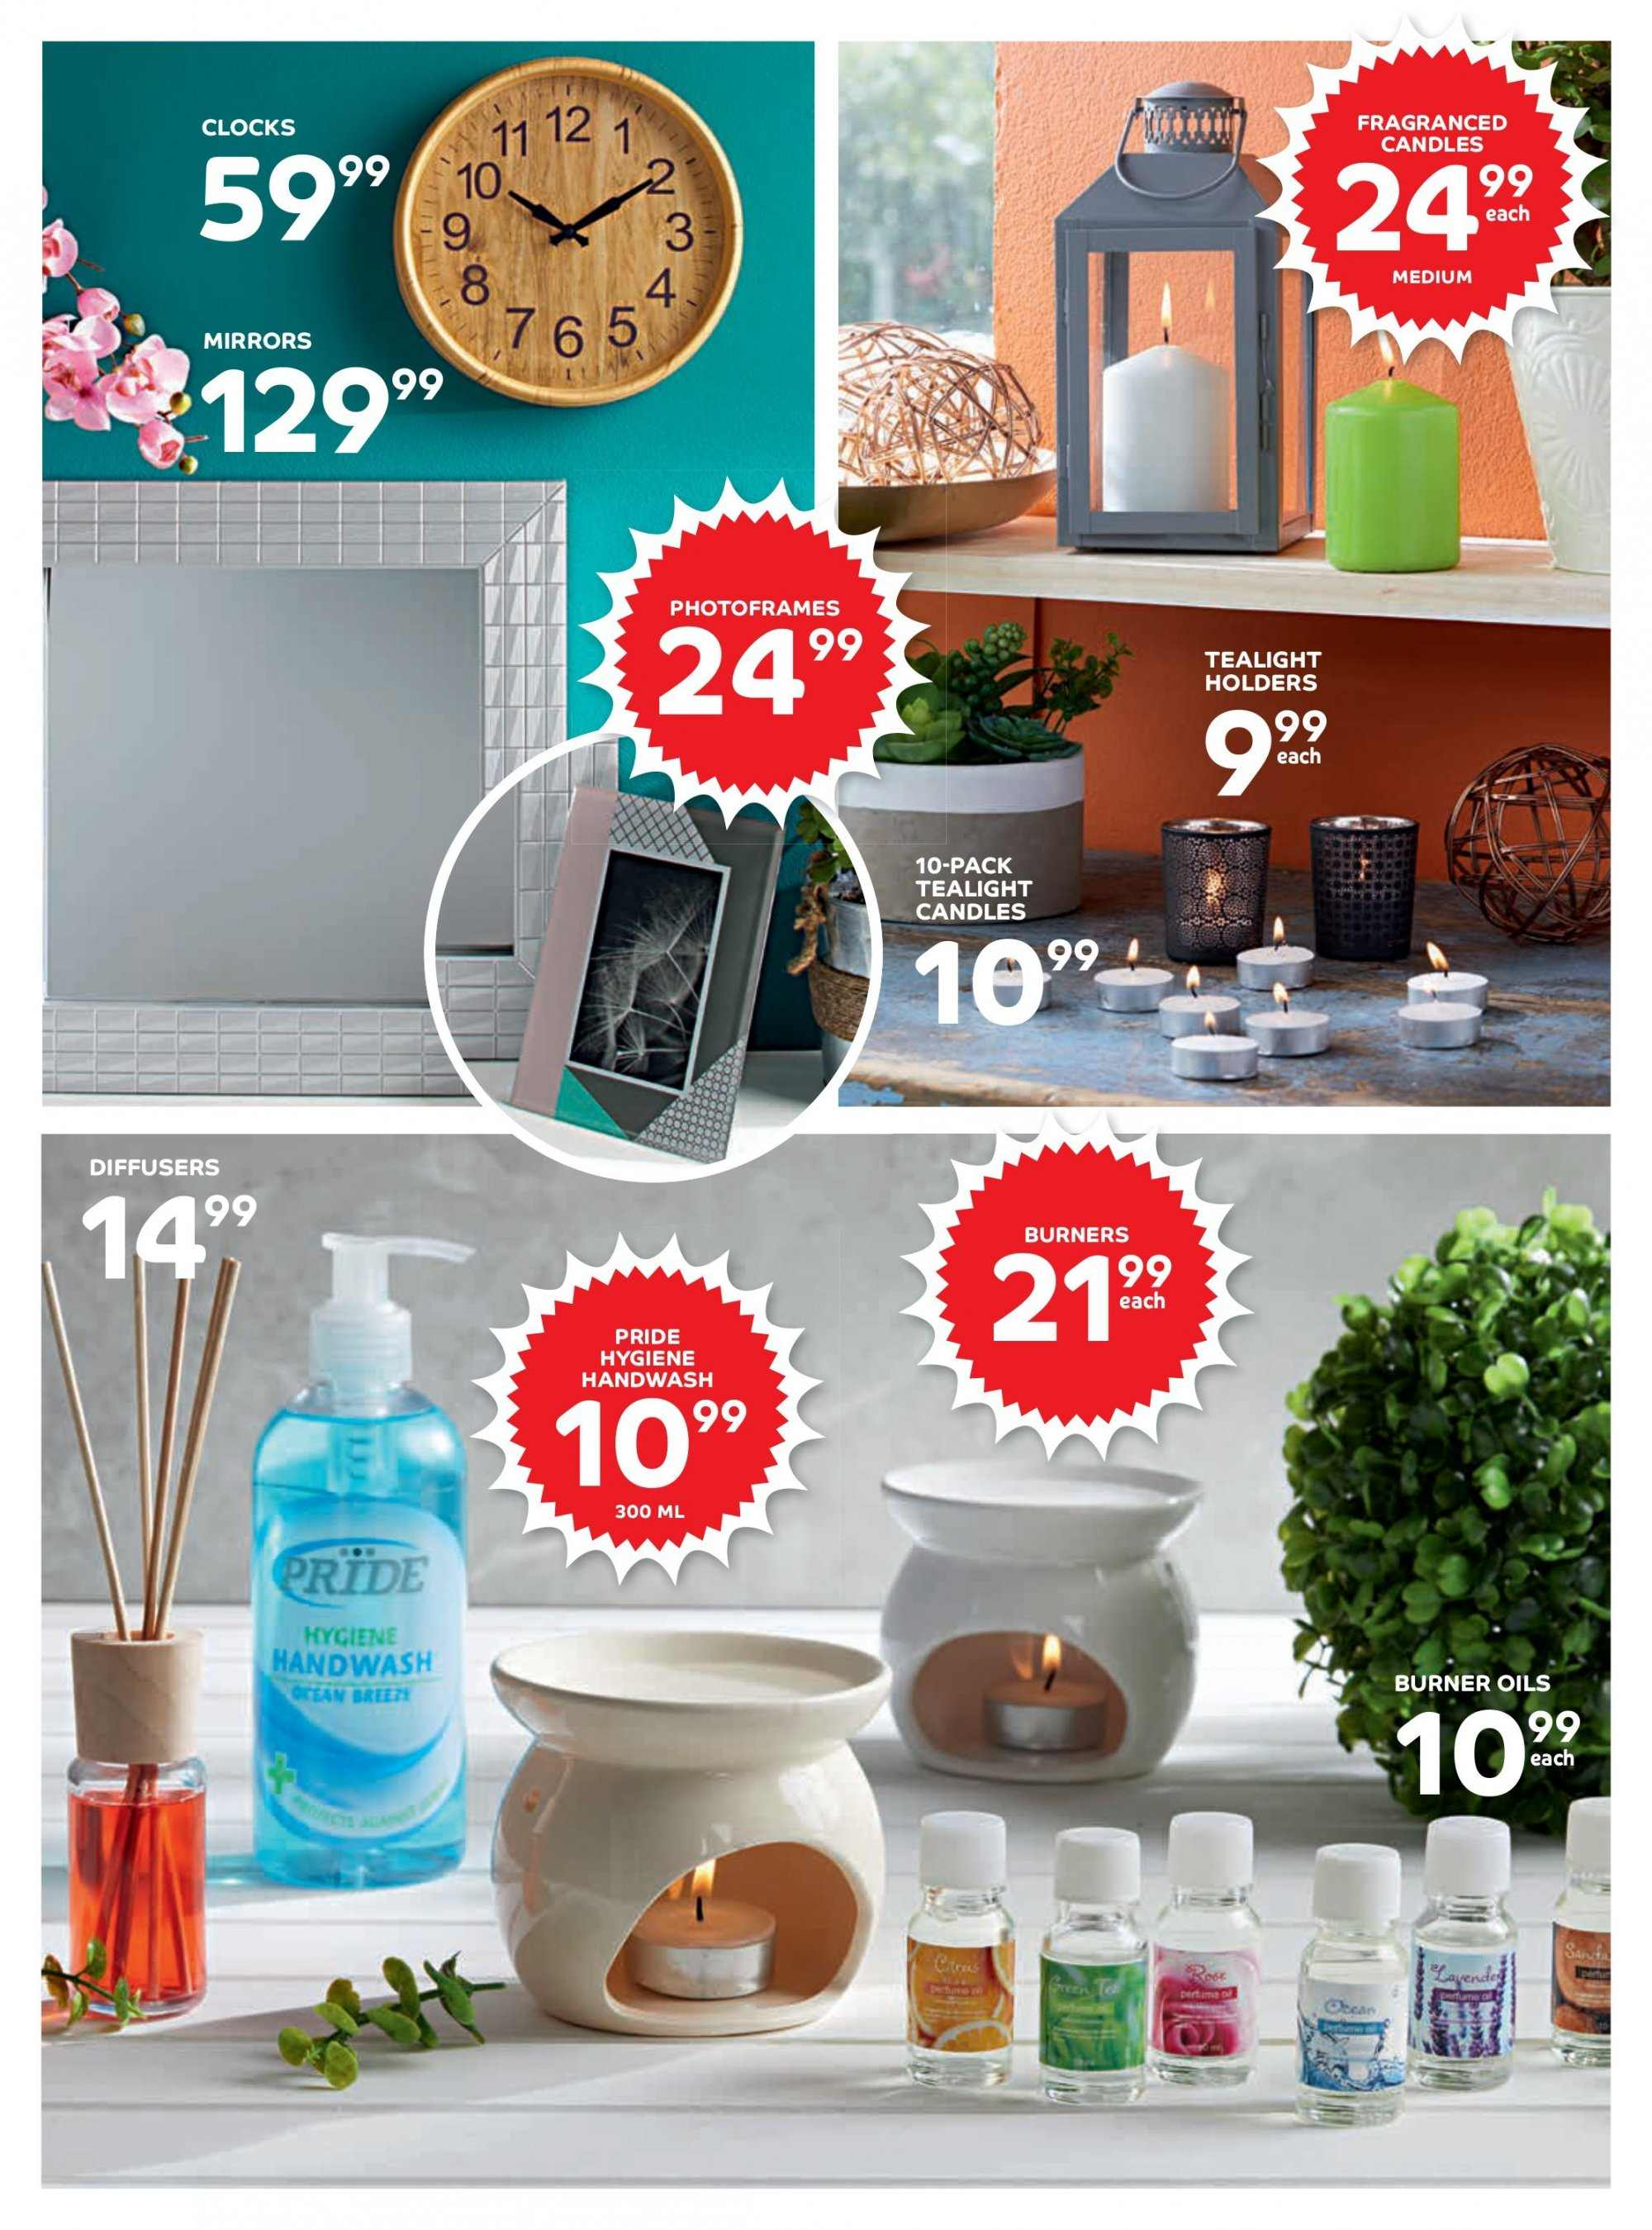 PEP Stores catalogue  - 02.28.2019 - 03.26.2019. Page 3.